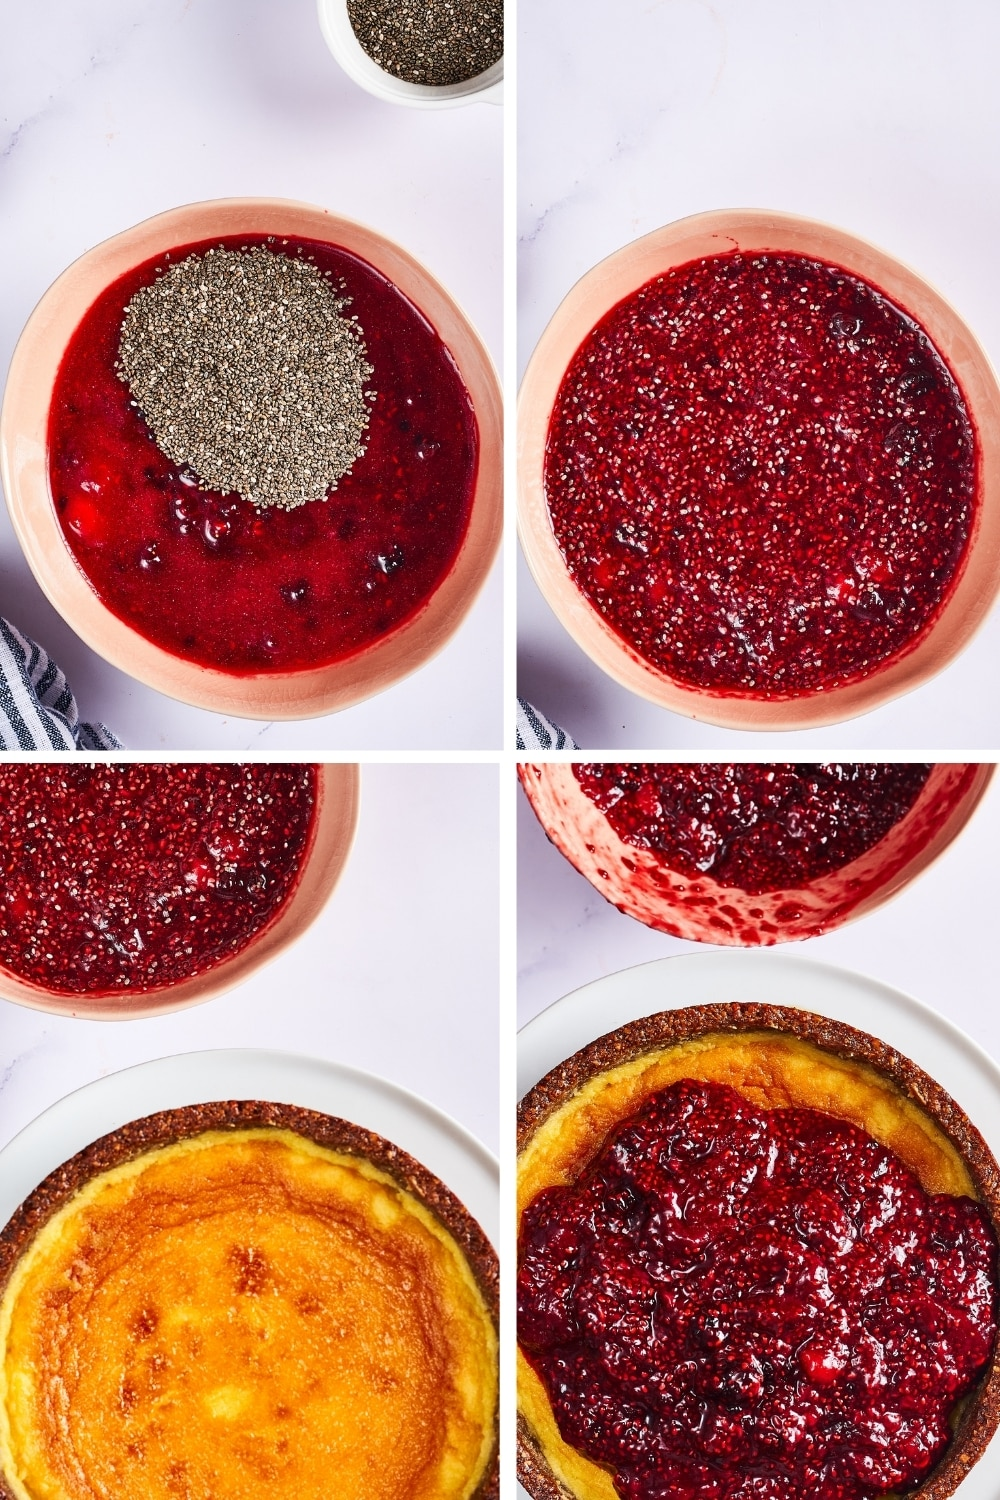 A four way split picture showing the process of making a raspberry chia cheesecake topping.